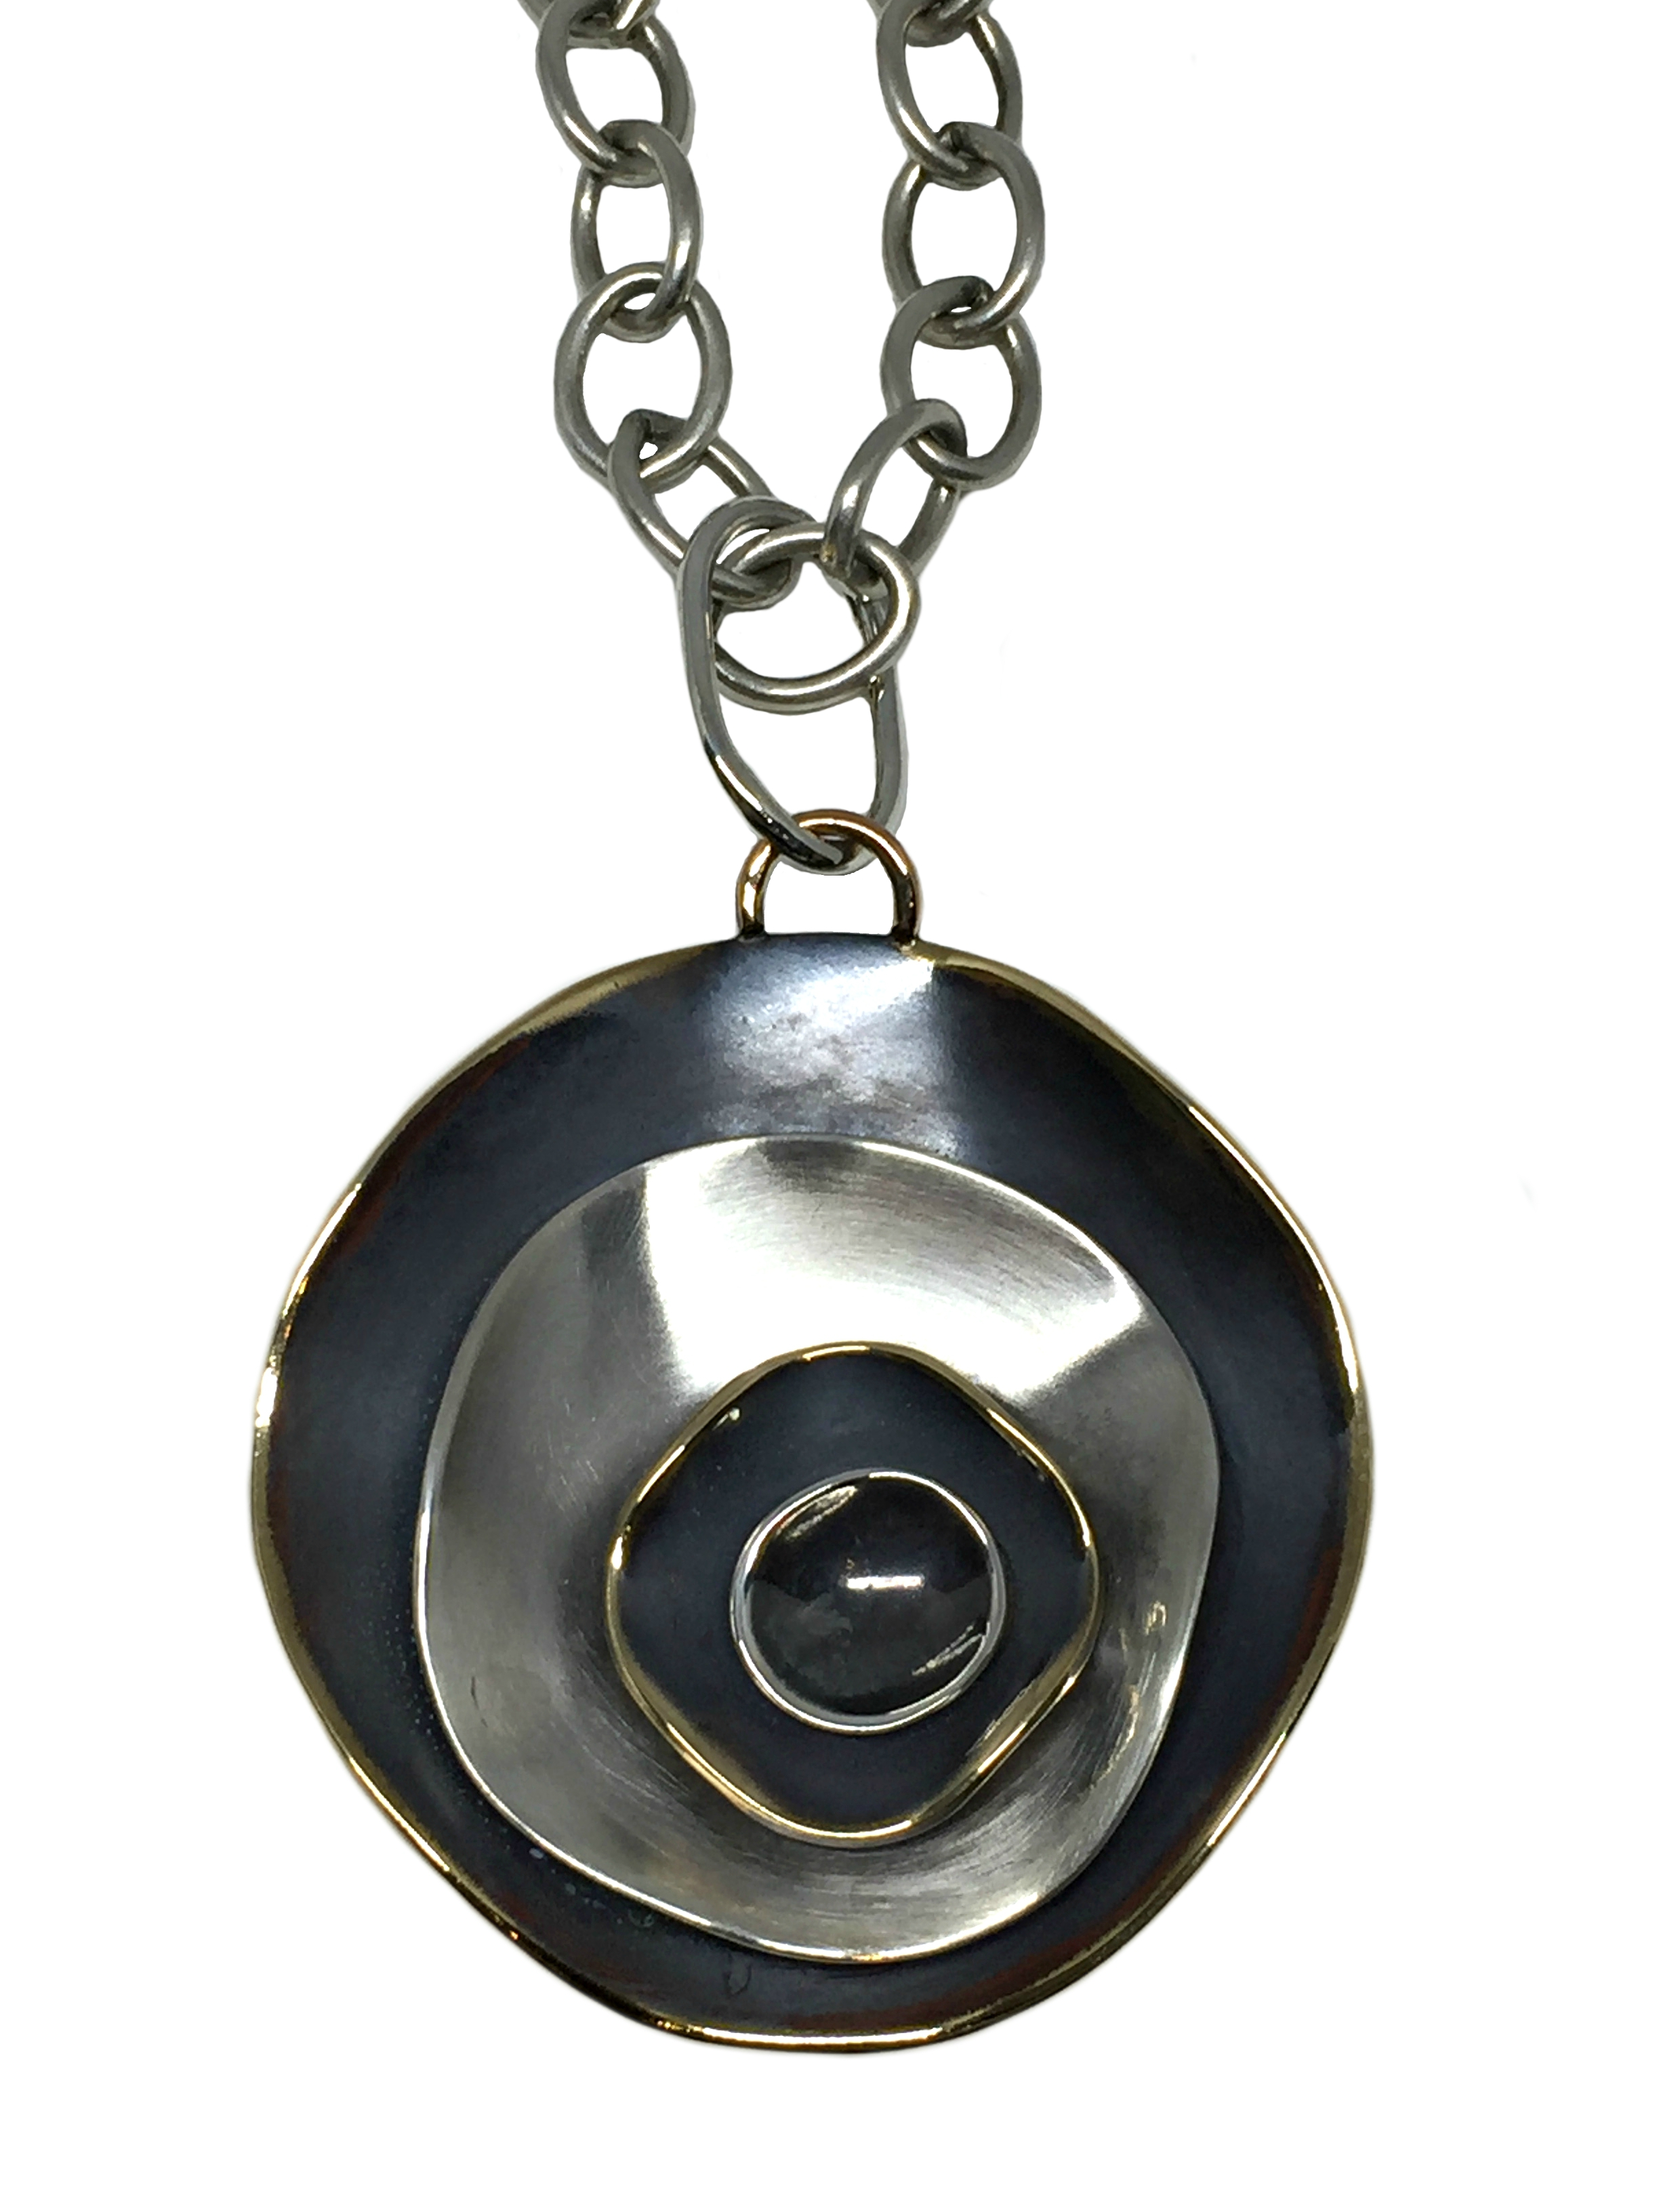 Bronze and sterling silver Karyn Chopik pendant | Effusion Art Gallery + Cast Glass Studio, Invermere BC